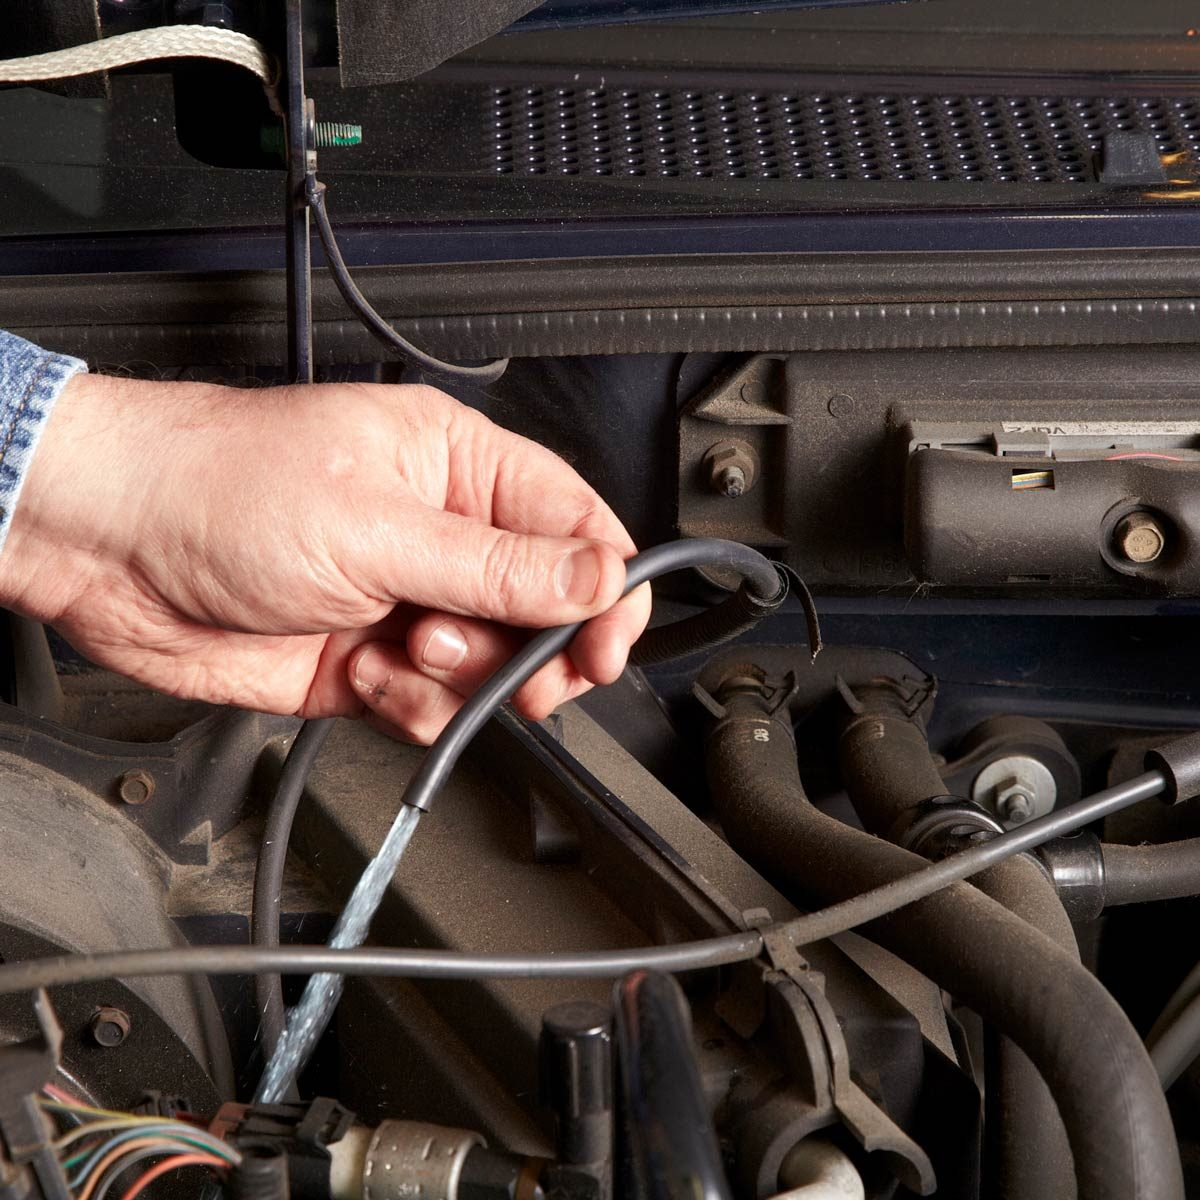 100 Super Simple Car Repairs You Dont Need To Go The Shop For 70 Bee Wiring Diagram Troubleshoot Windshield Washers